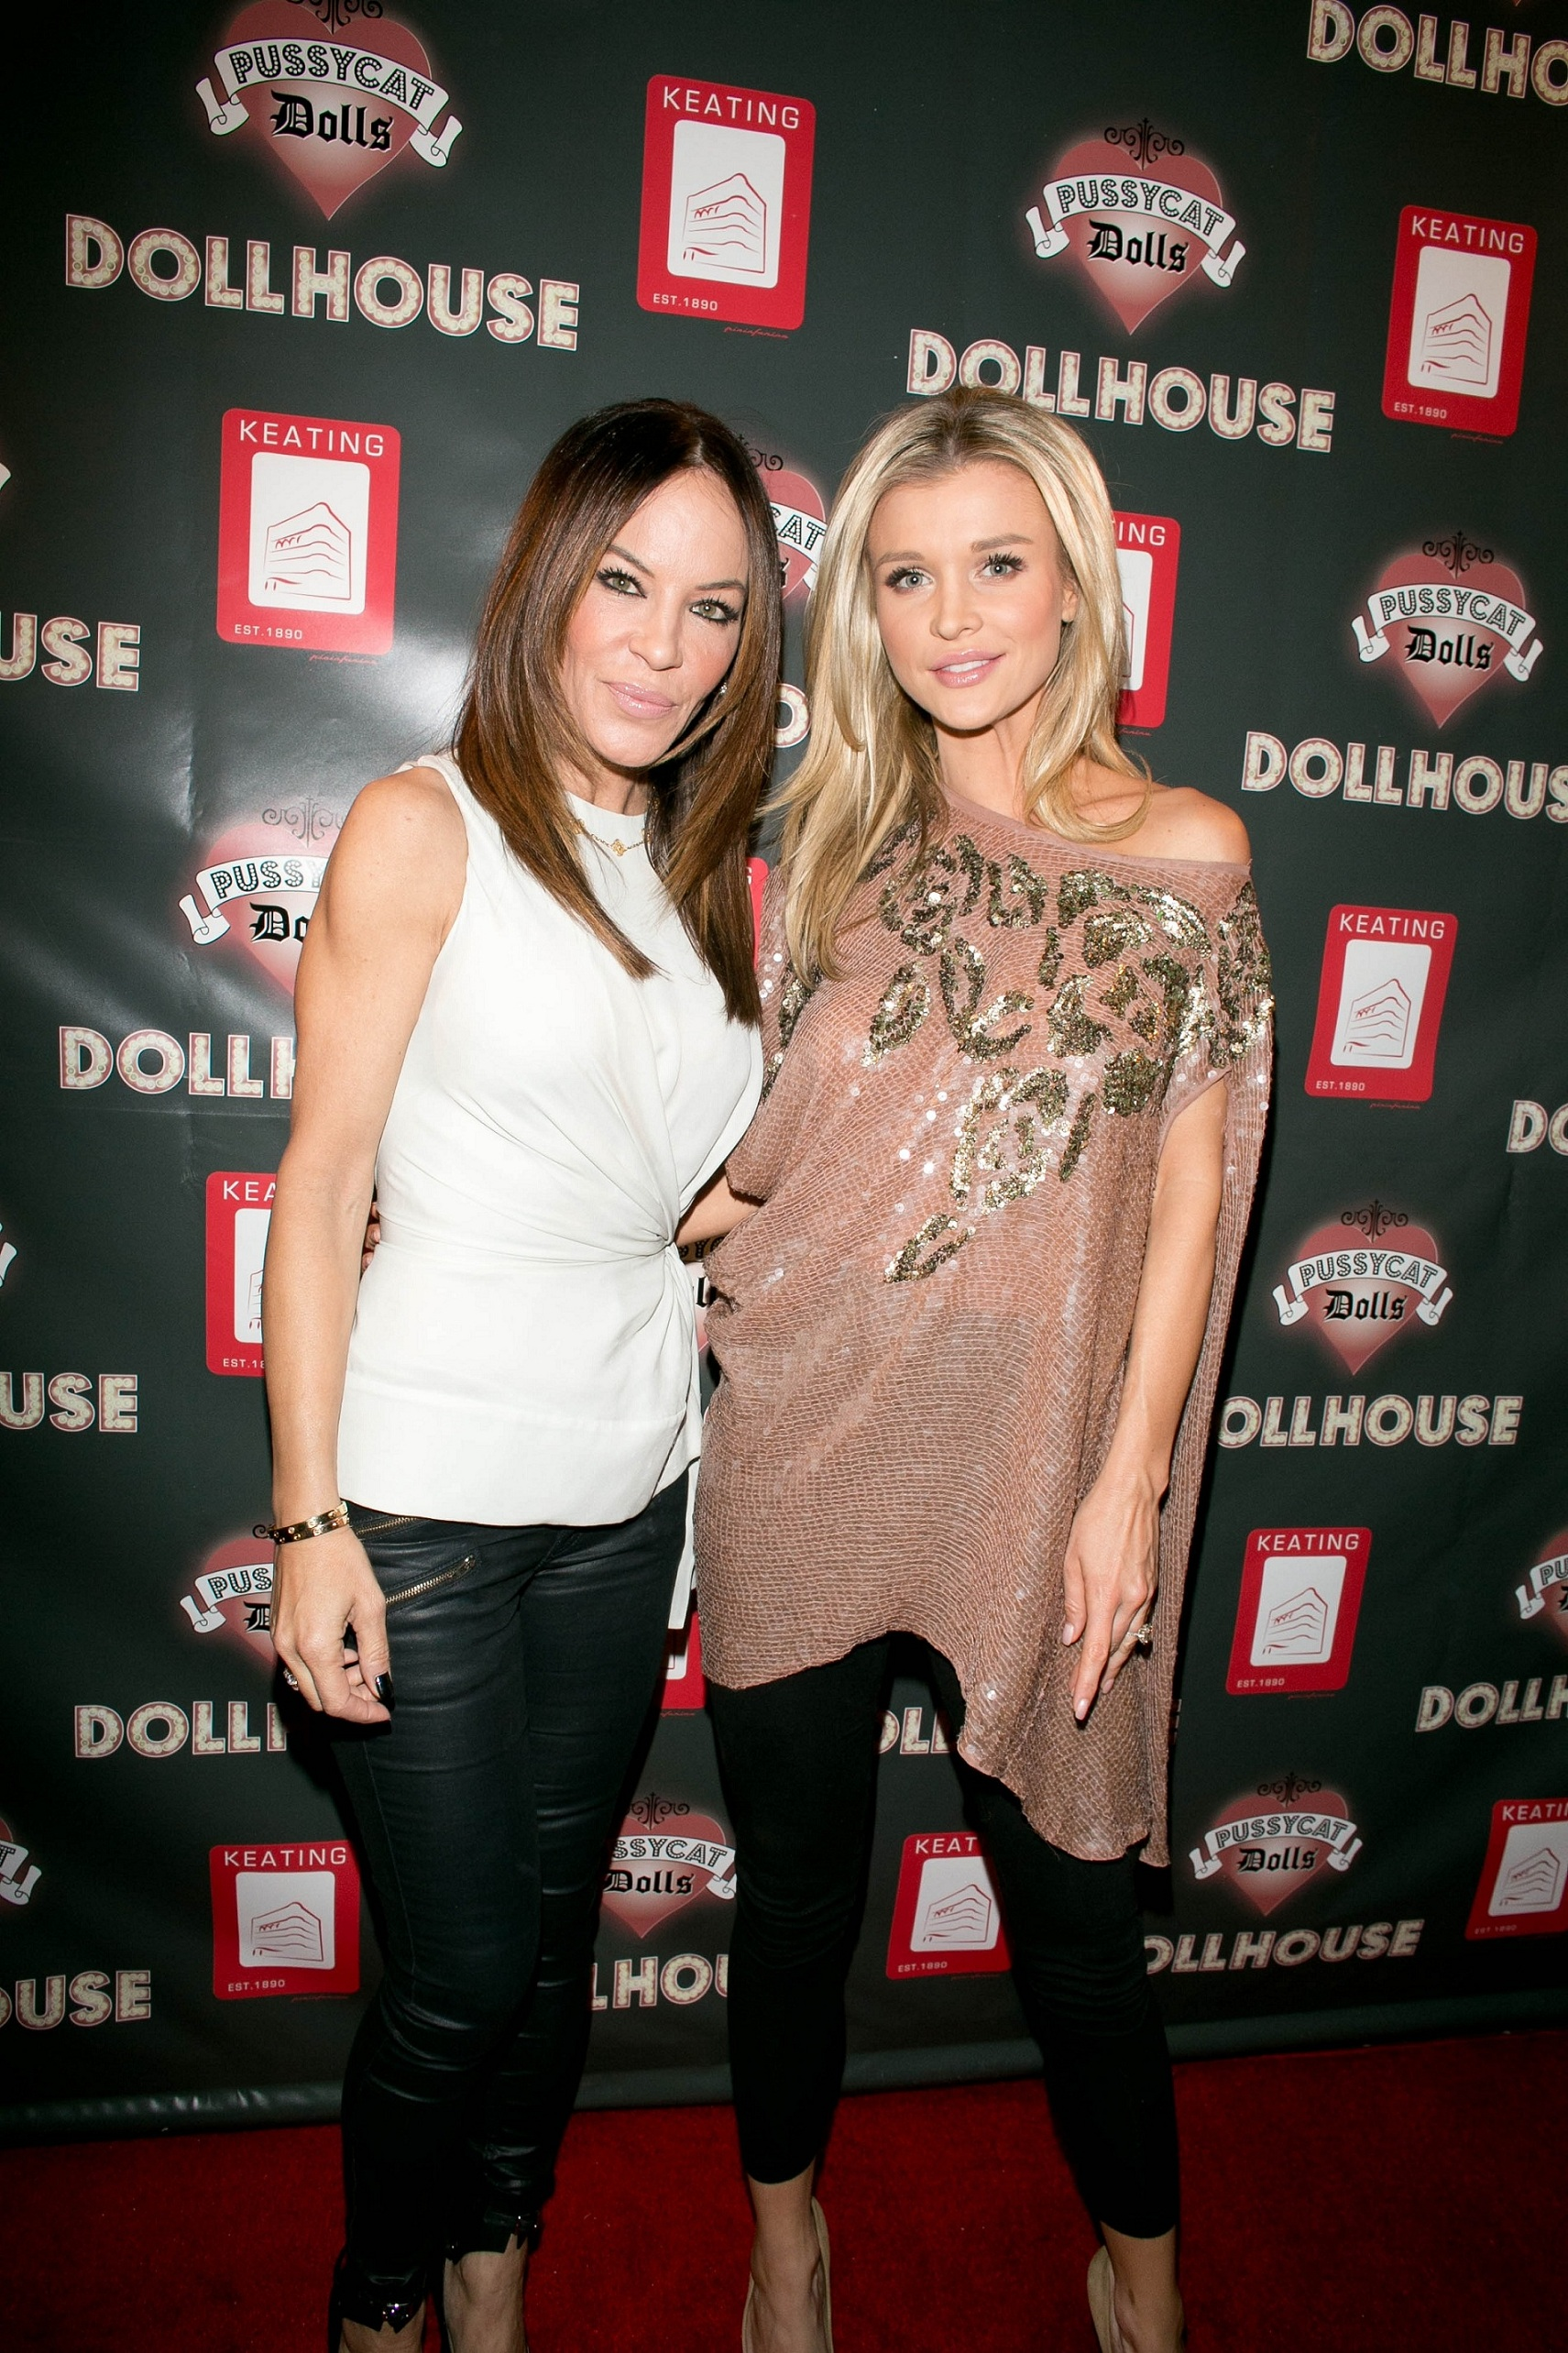 Joanna Krupa and Robin Antin at the Pussycat Dolls Dollhouse at The Keating Hotel in San Diego Feb. 16. (Robert Benson/WireImage)